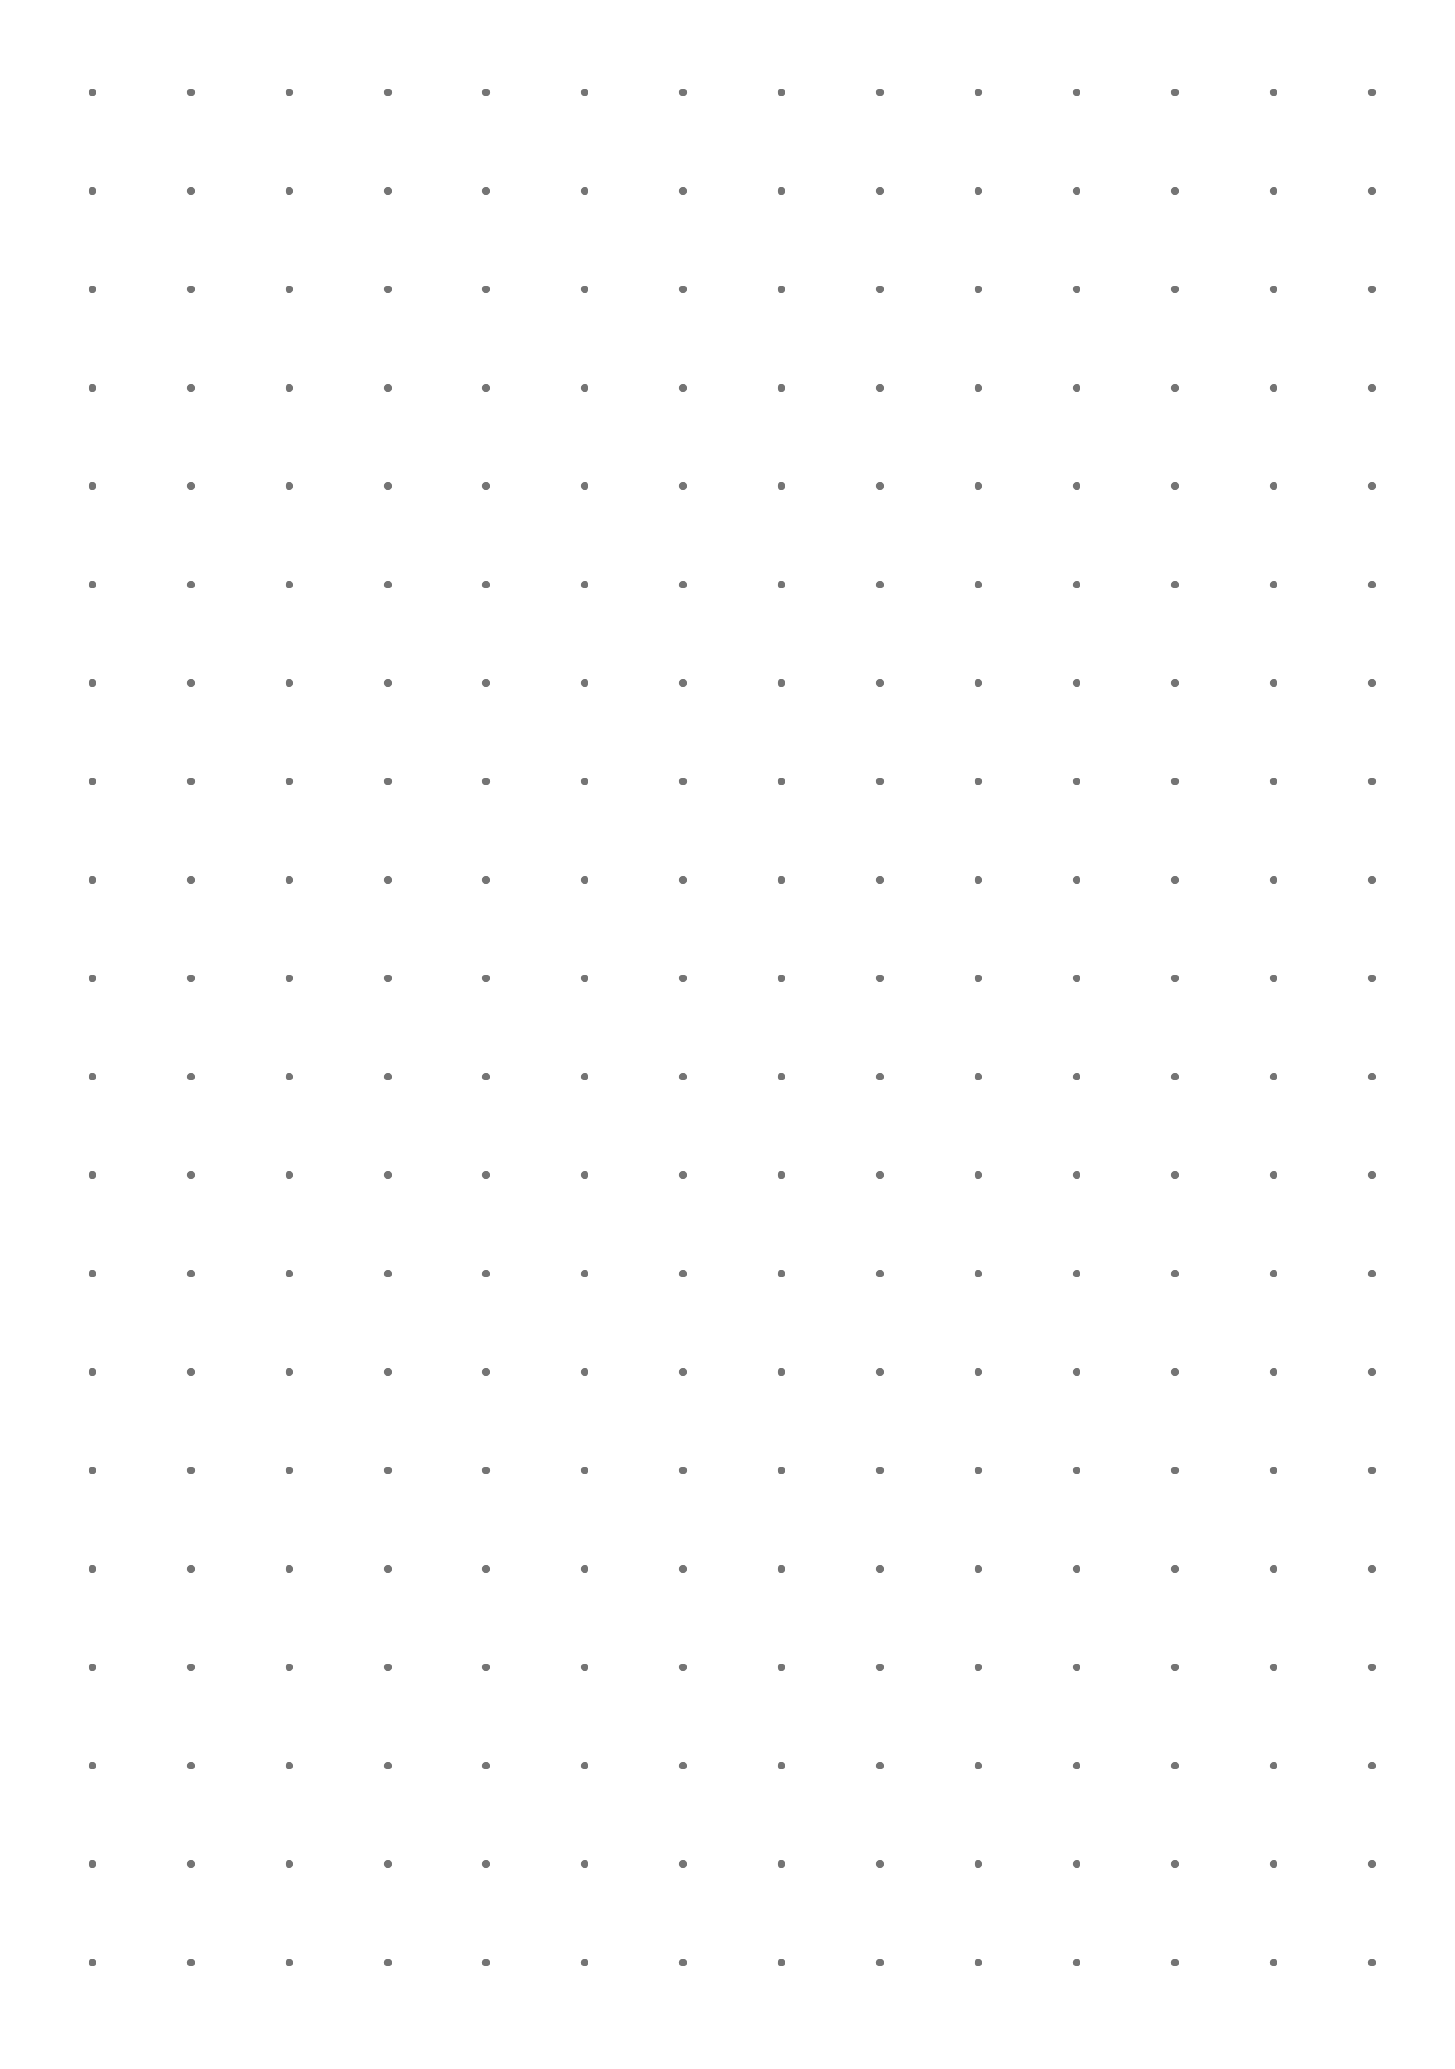 Dot Grid Paper With 10 Mm Spacing